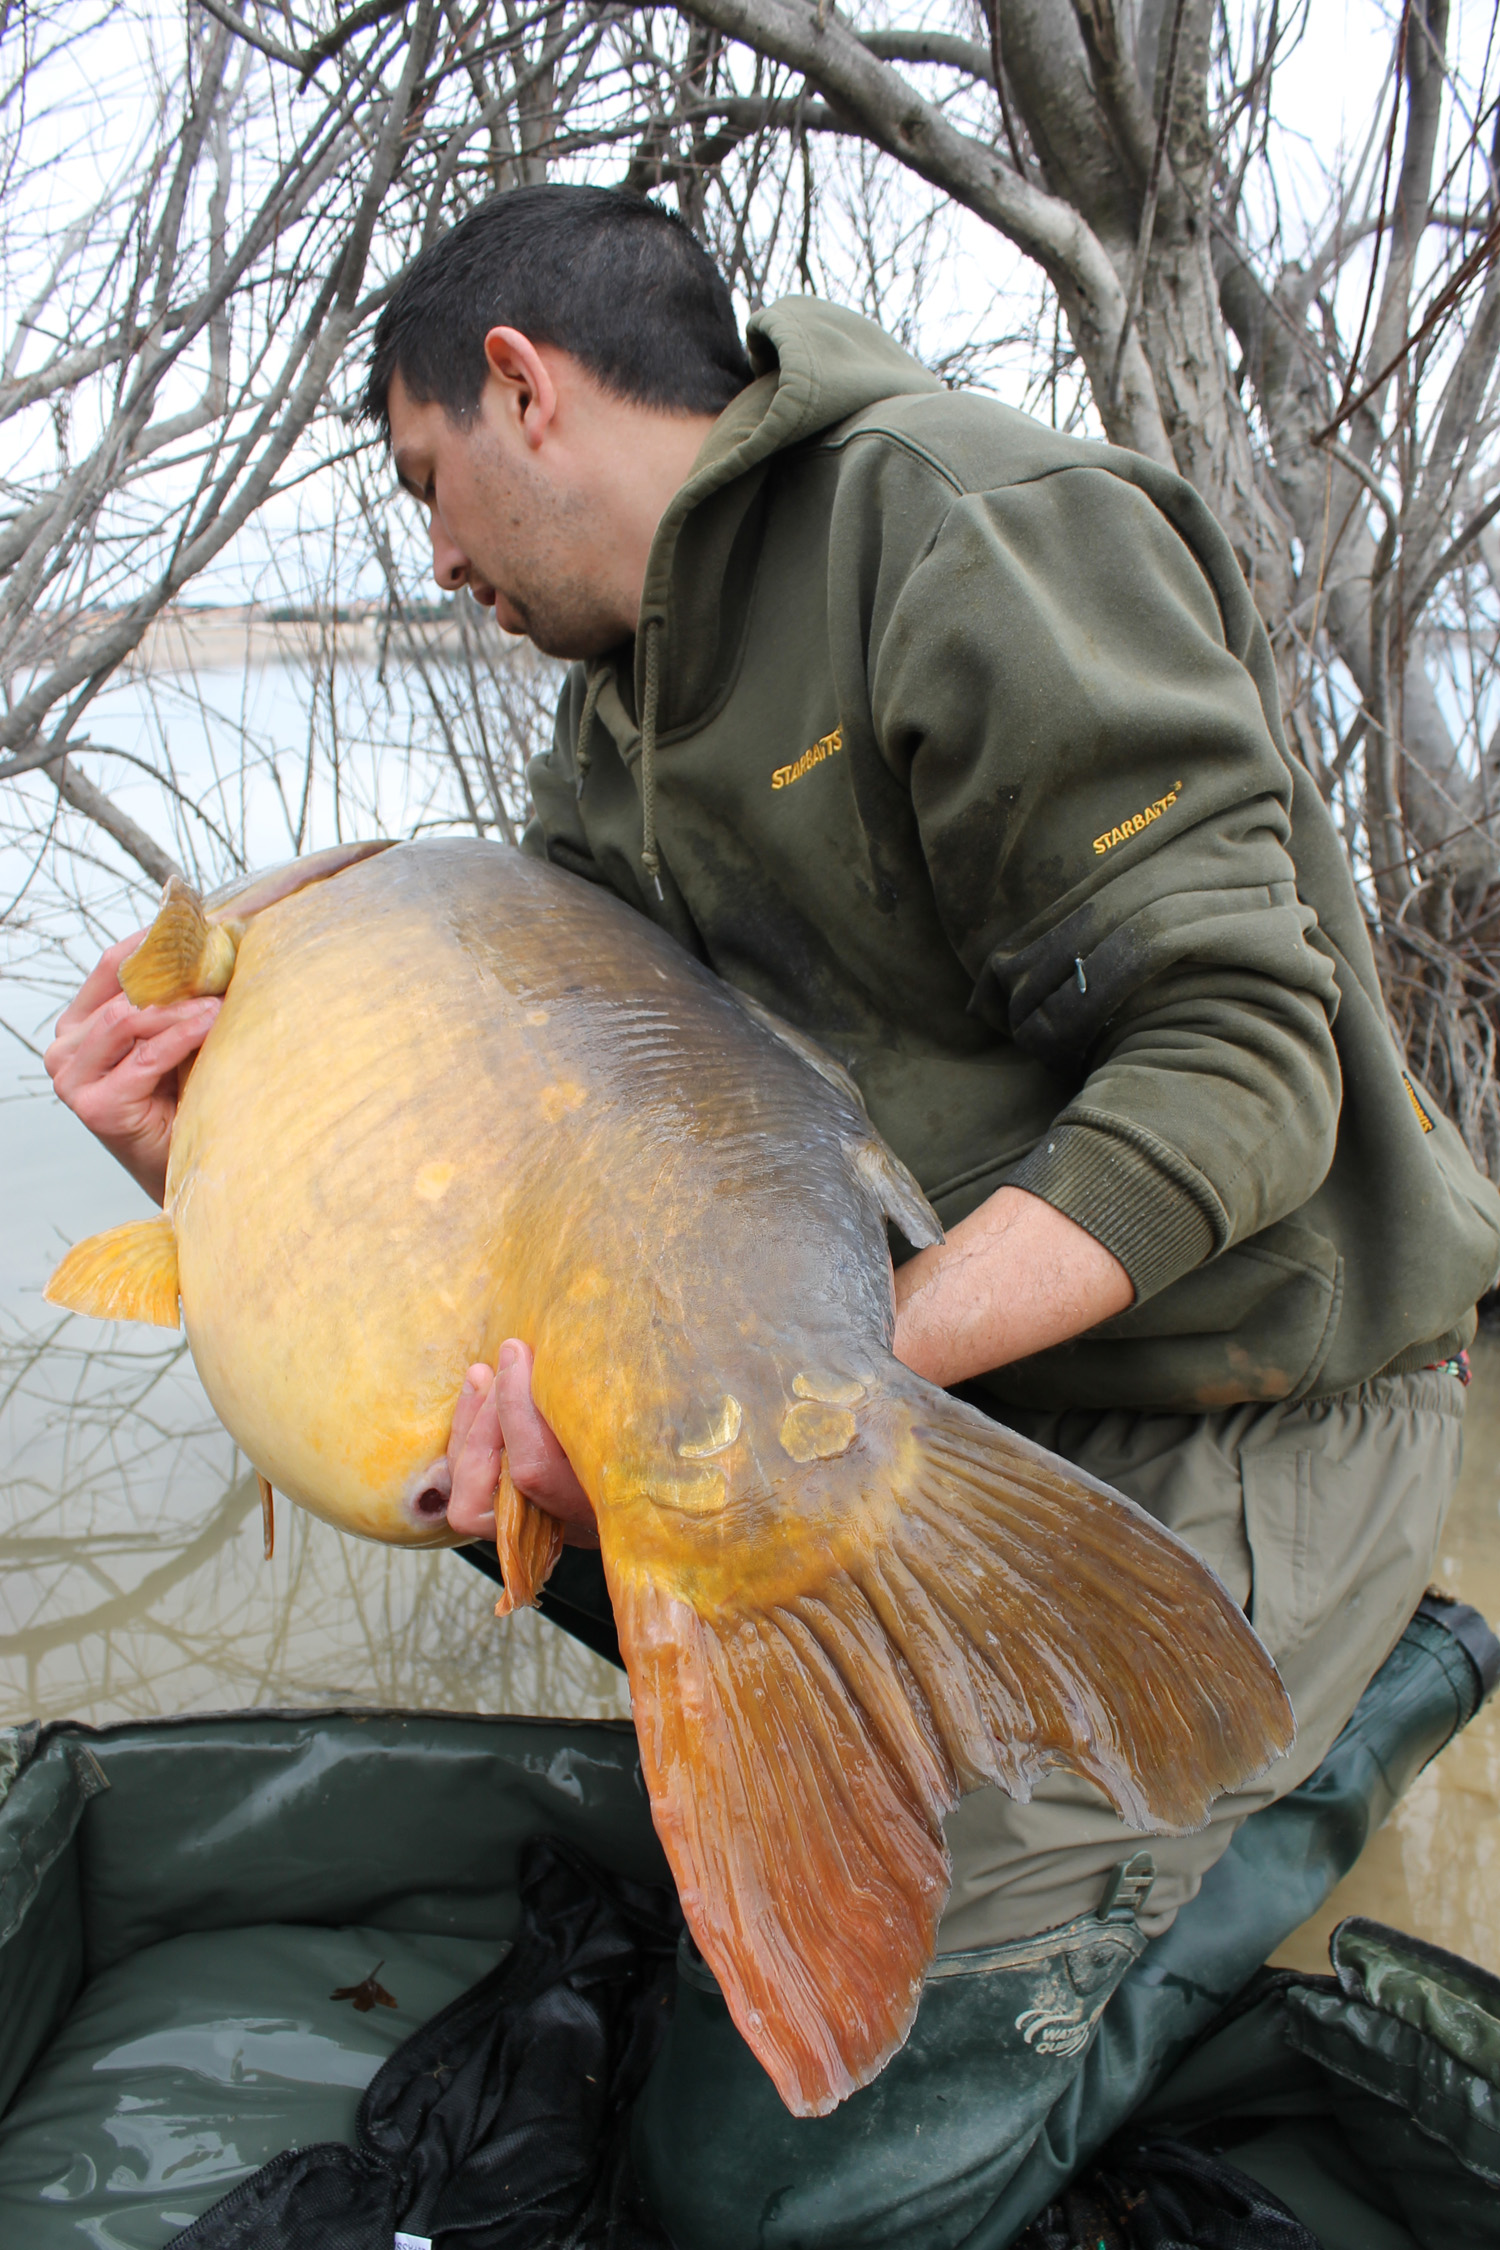 http://www.starbaits.com/fichiers/images/team/gallery/DUCERE_Cedric/22-DUCERE-CEDRIC.JPG